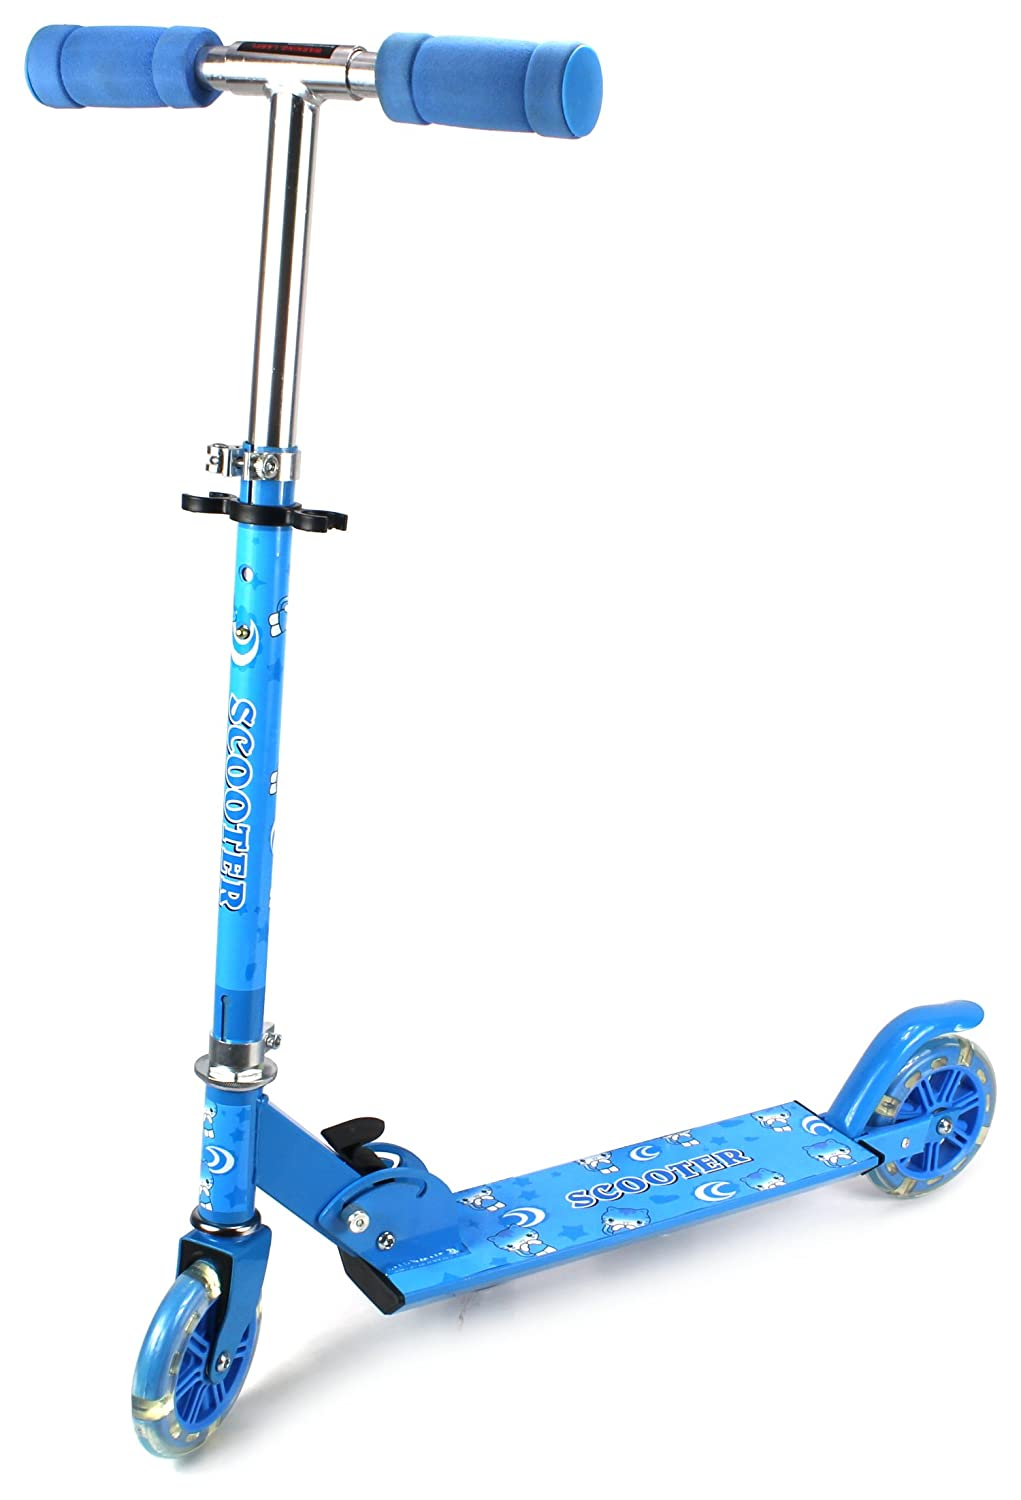 Fun Cat Children's Two Wheeled Metal Toy Kick Scooter w/ Light Up Wheels, Adjustable Handlebar Height, Rear Fender Brake (Blue)